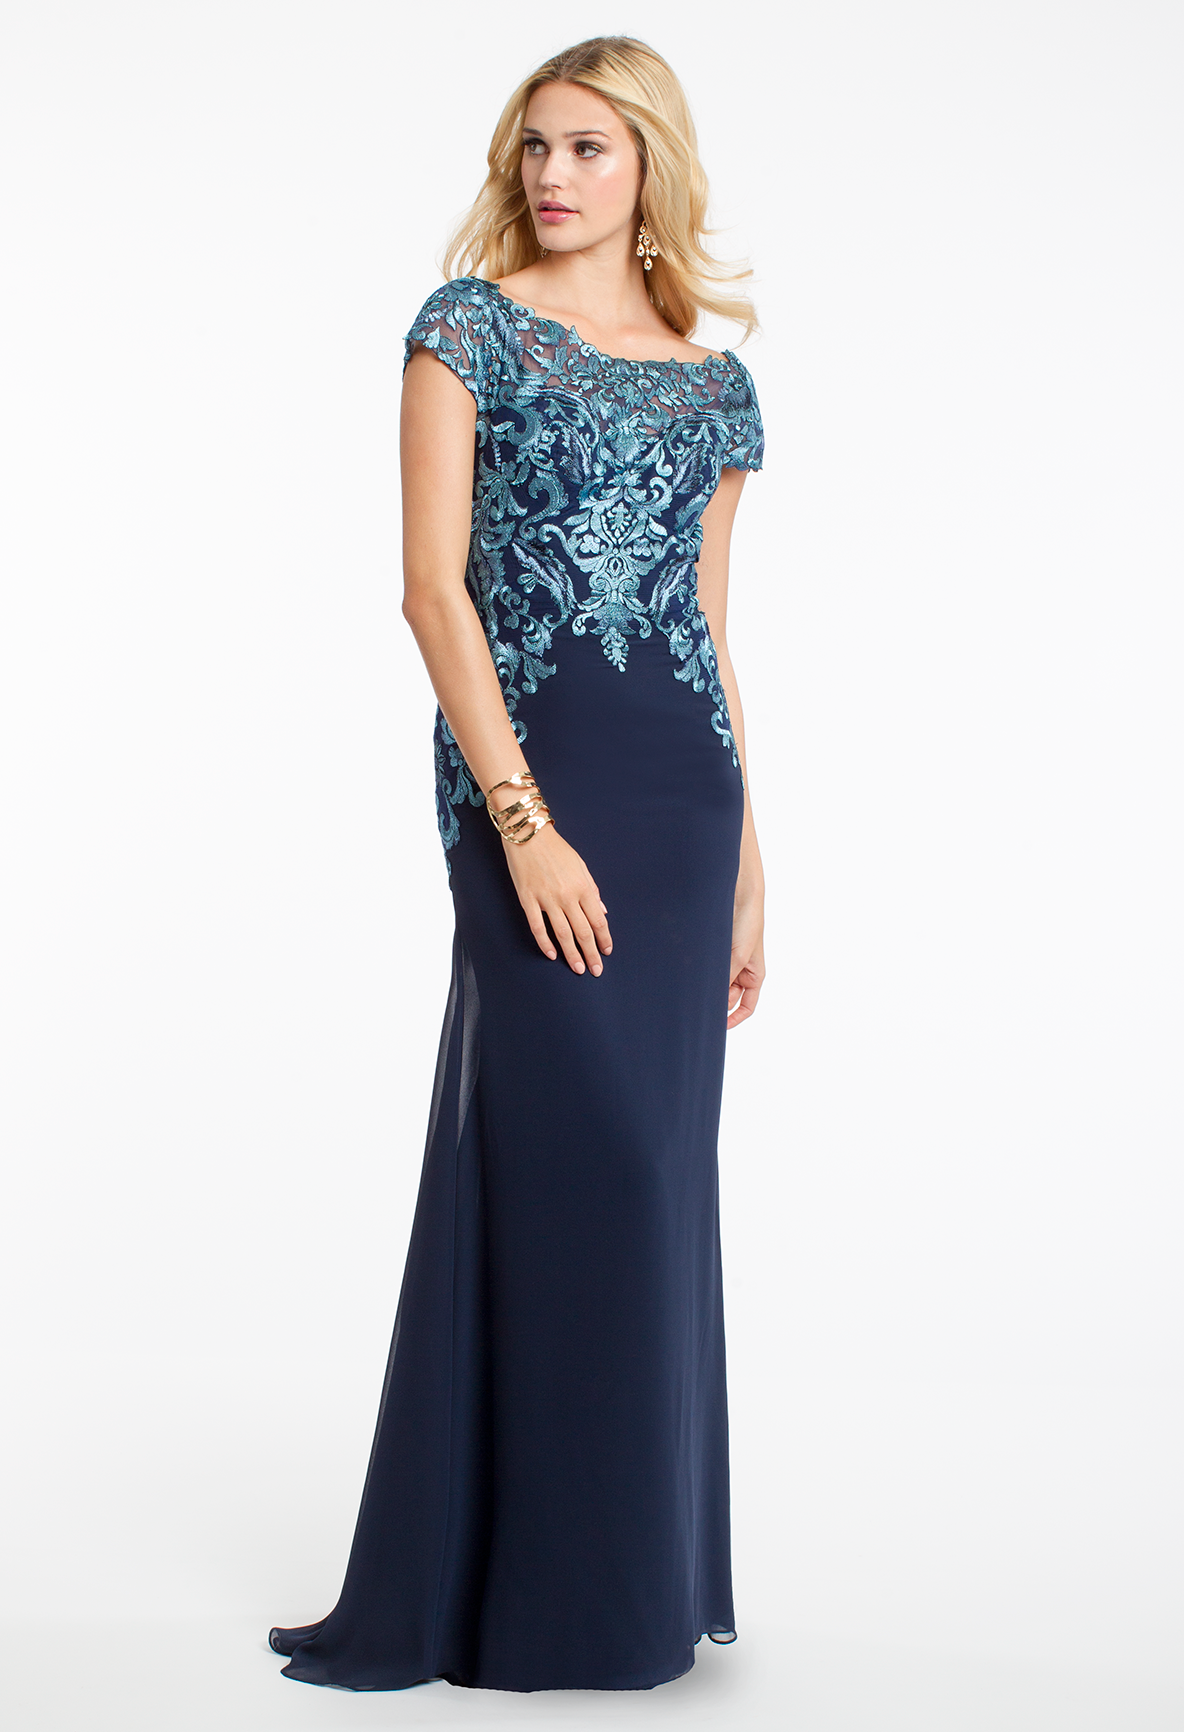 Georgette and sequin dress camillelavie wedding guest style